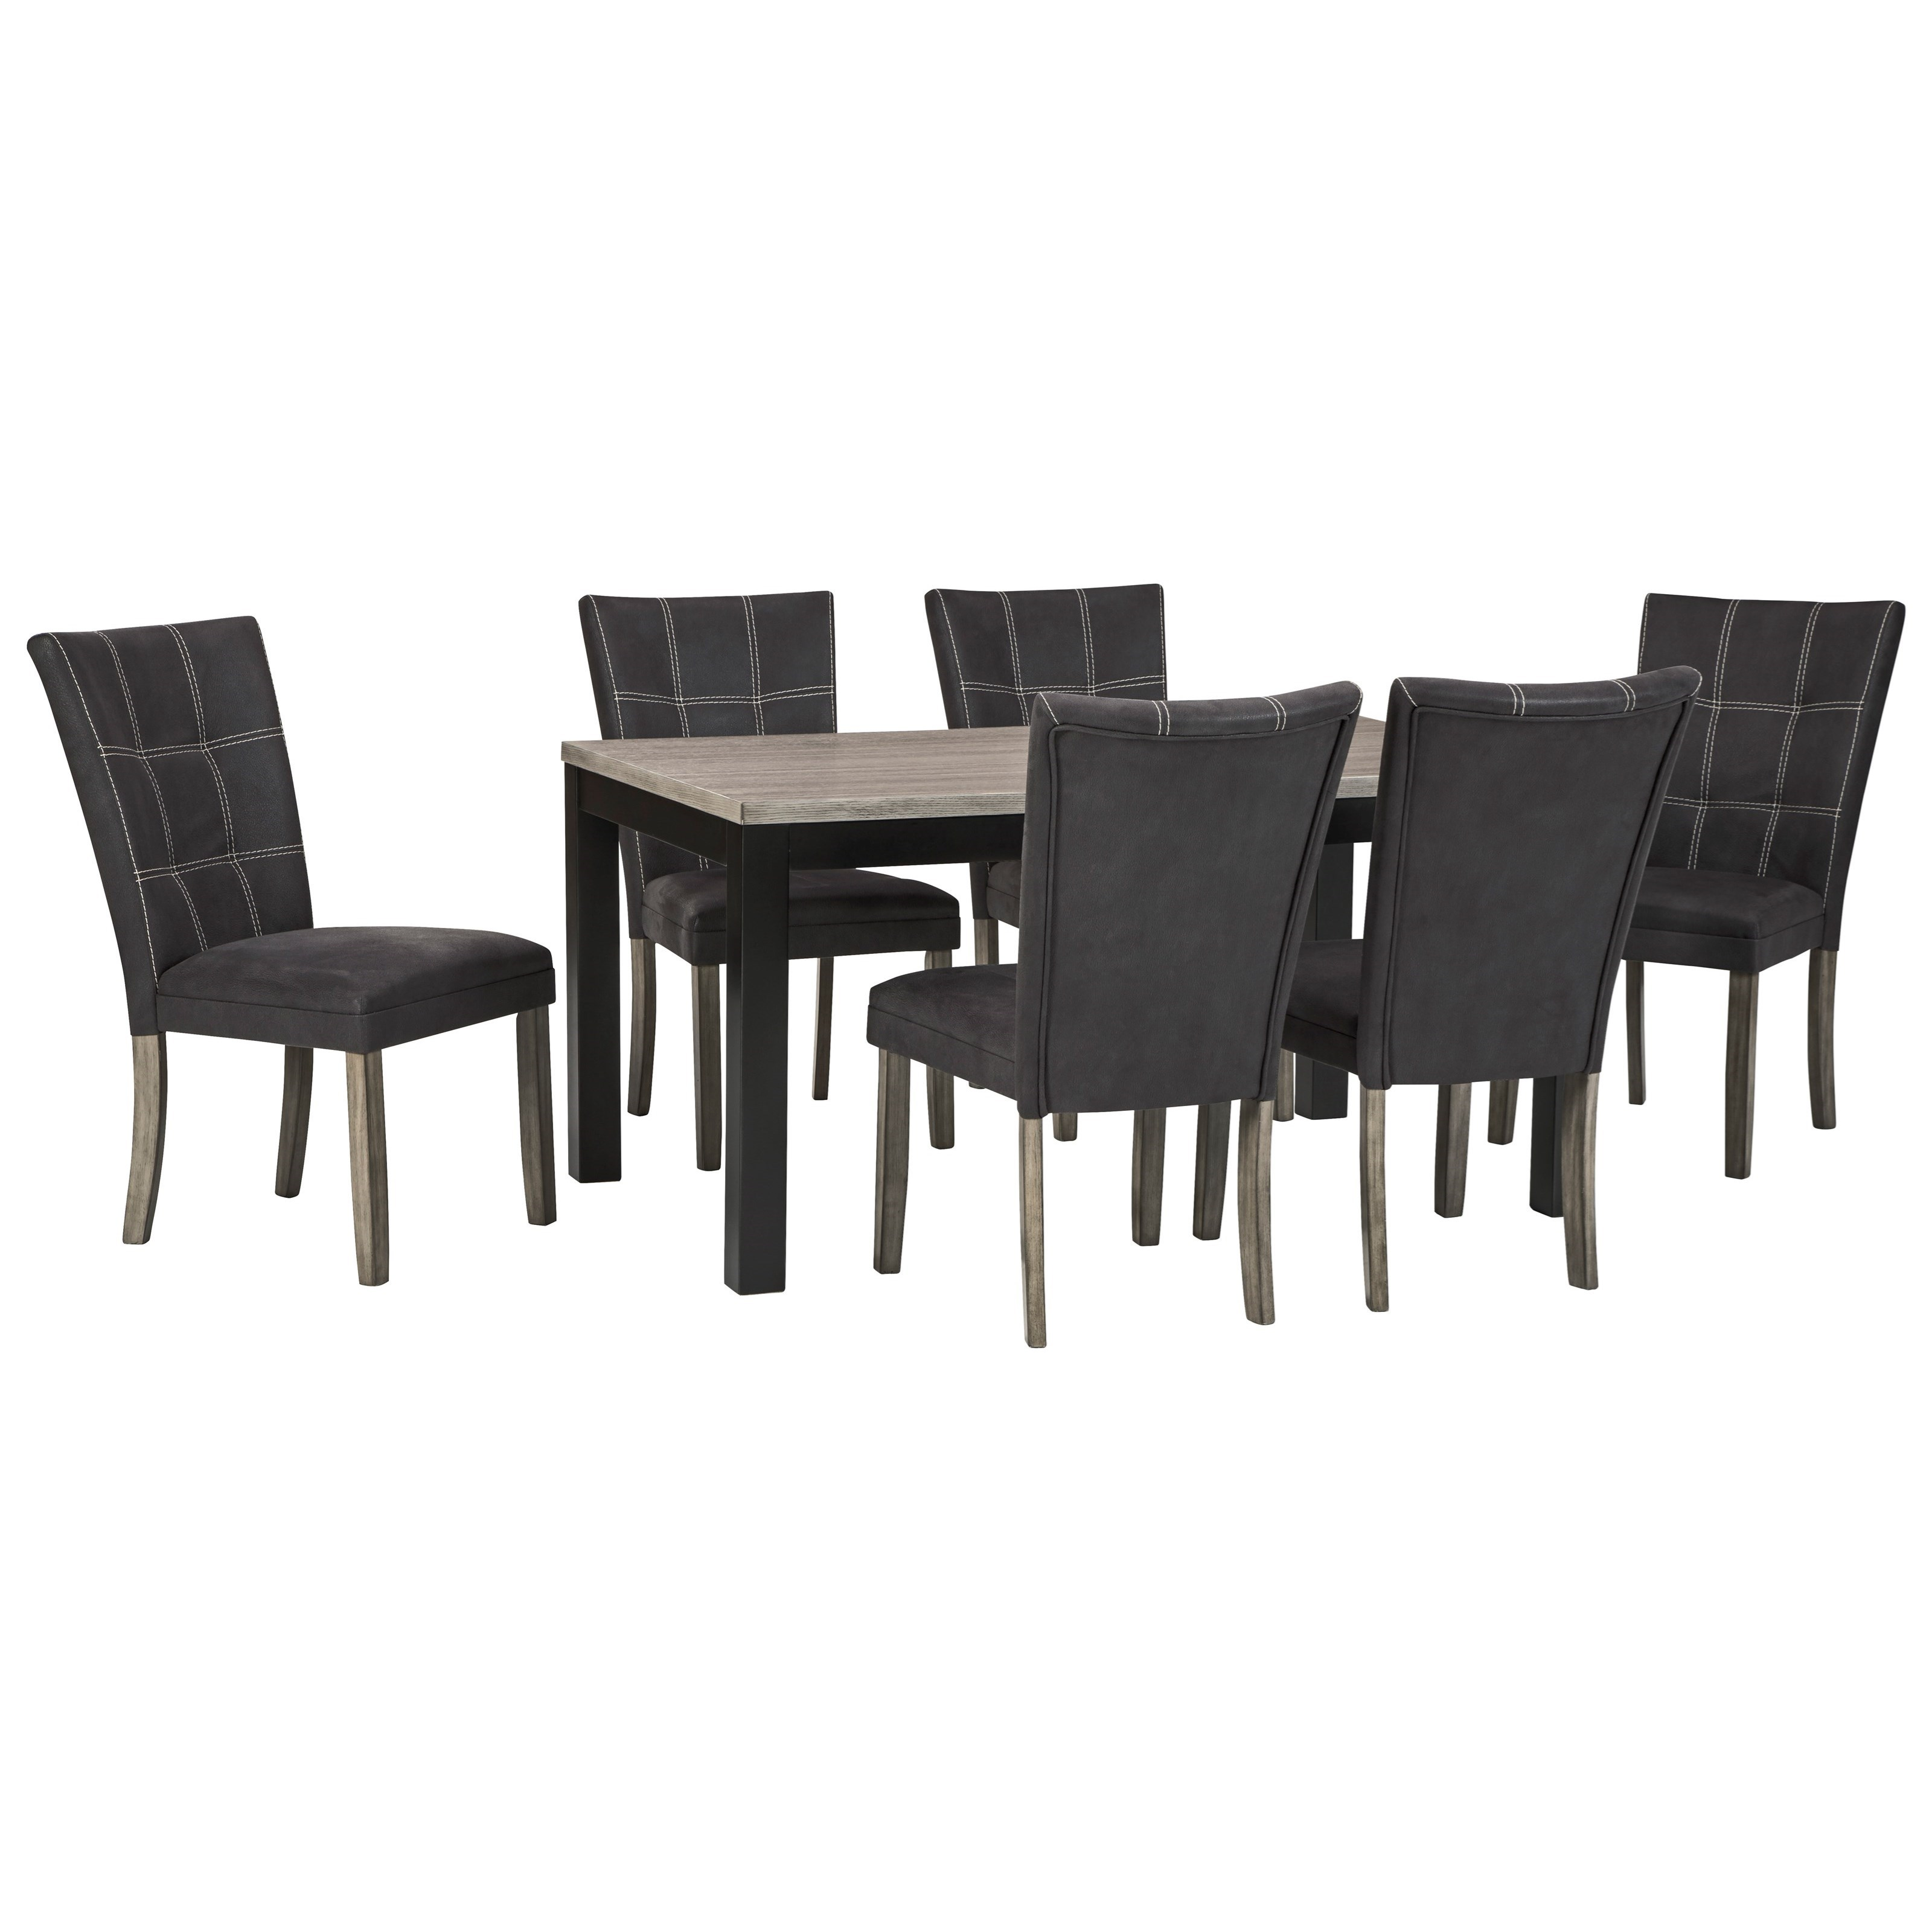 Dontally 7-Piece Rectangular Dining Table Set by Benchcraft at Northeast Factory Direct